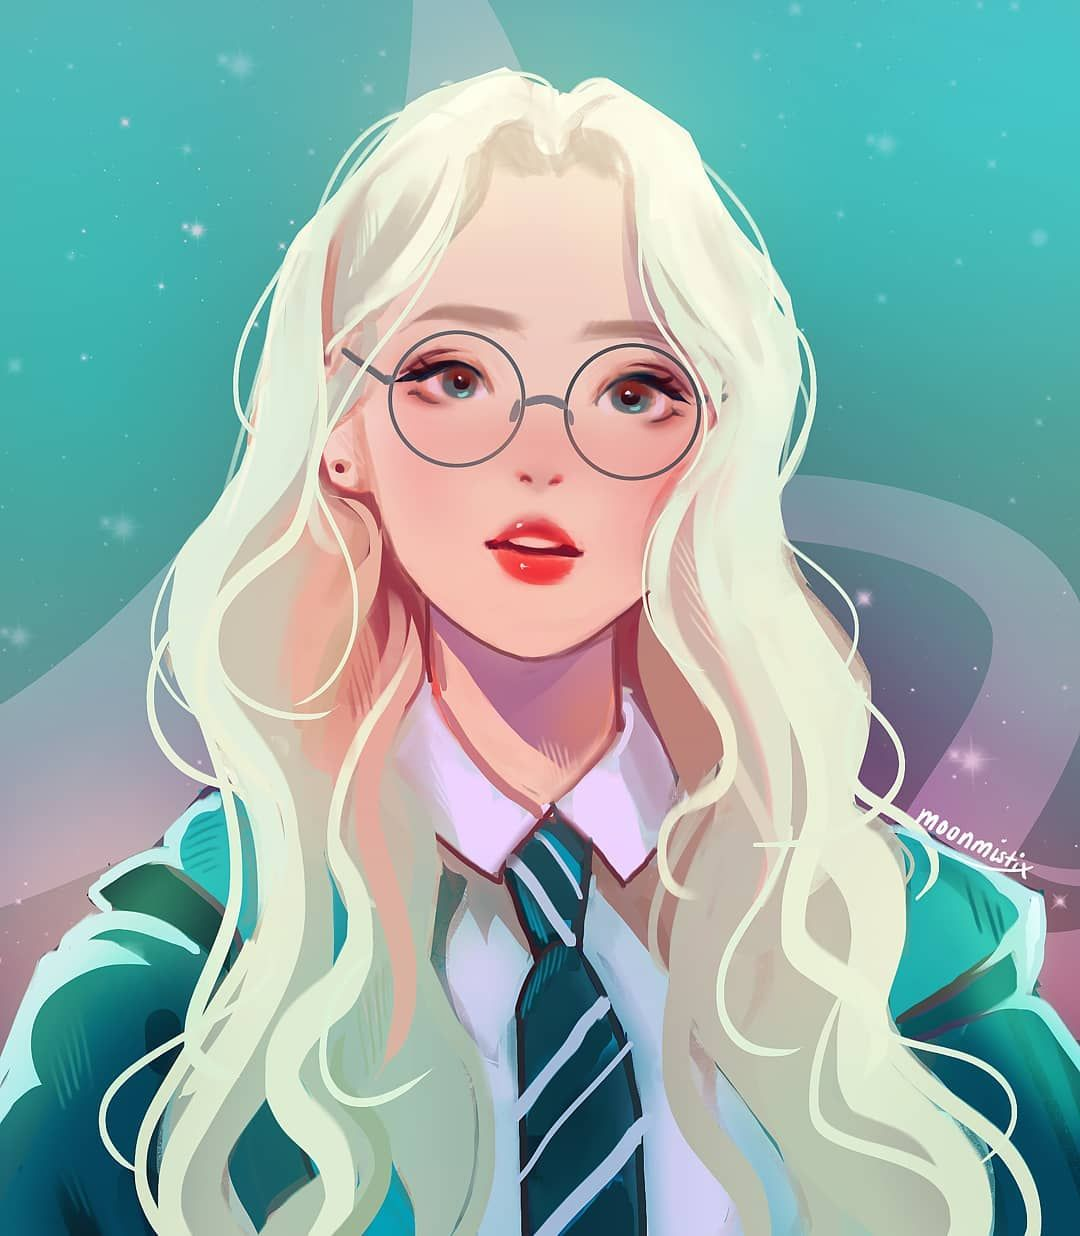 Jinsoul Slytherin Seen A Pic Of Jinsoul Wearing Slytherin